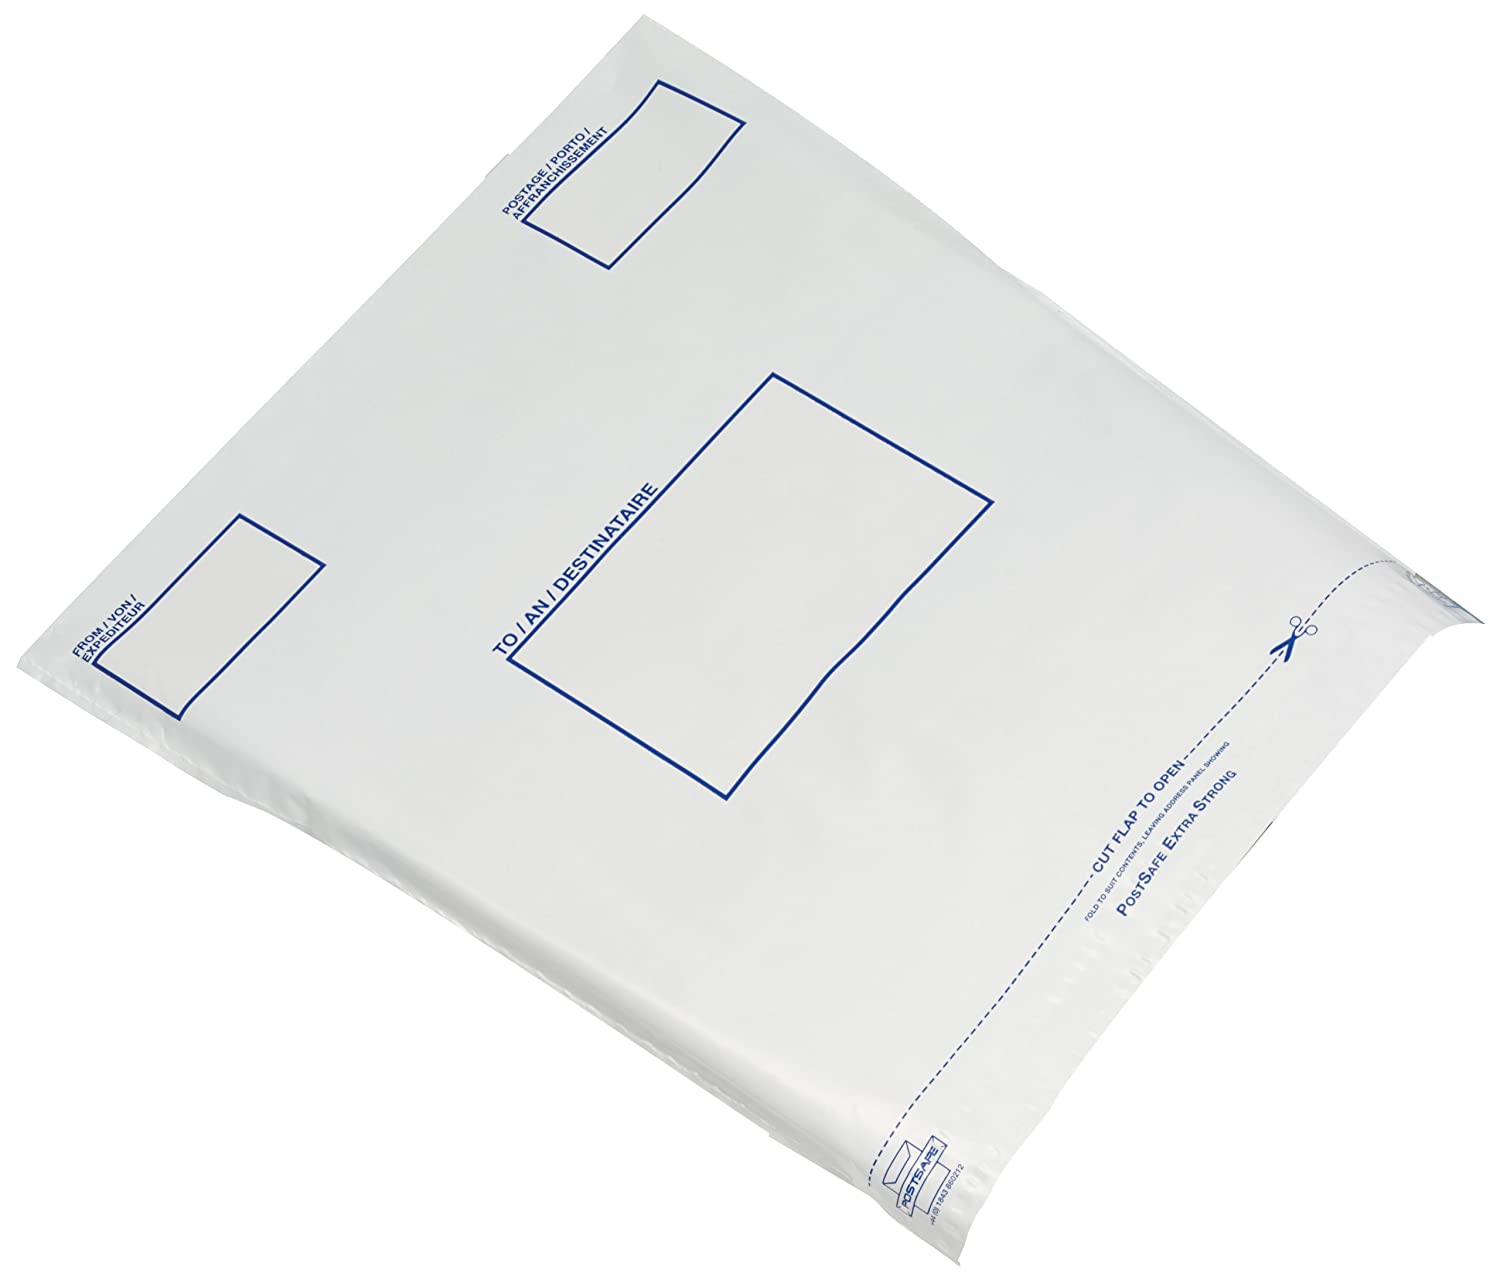 Post Safe Bio-Degradable Mailing PE-Bags 460 x 430mm Pack of 10